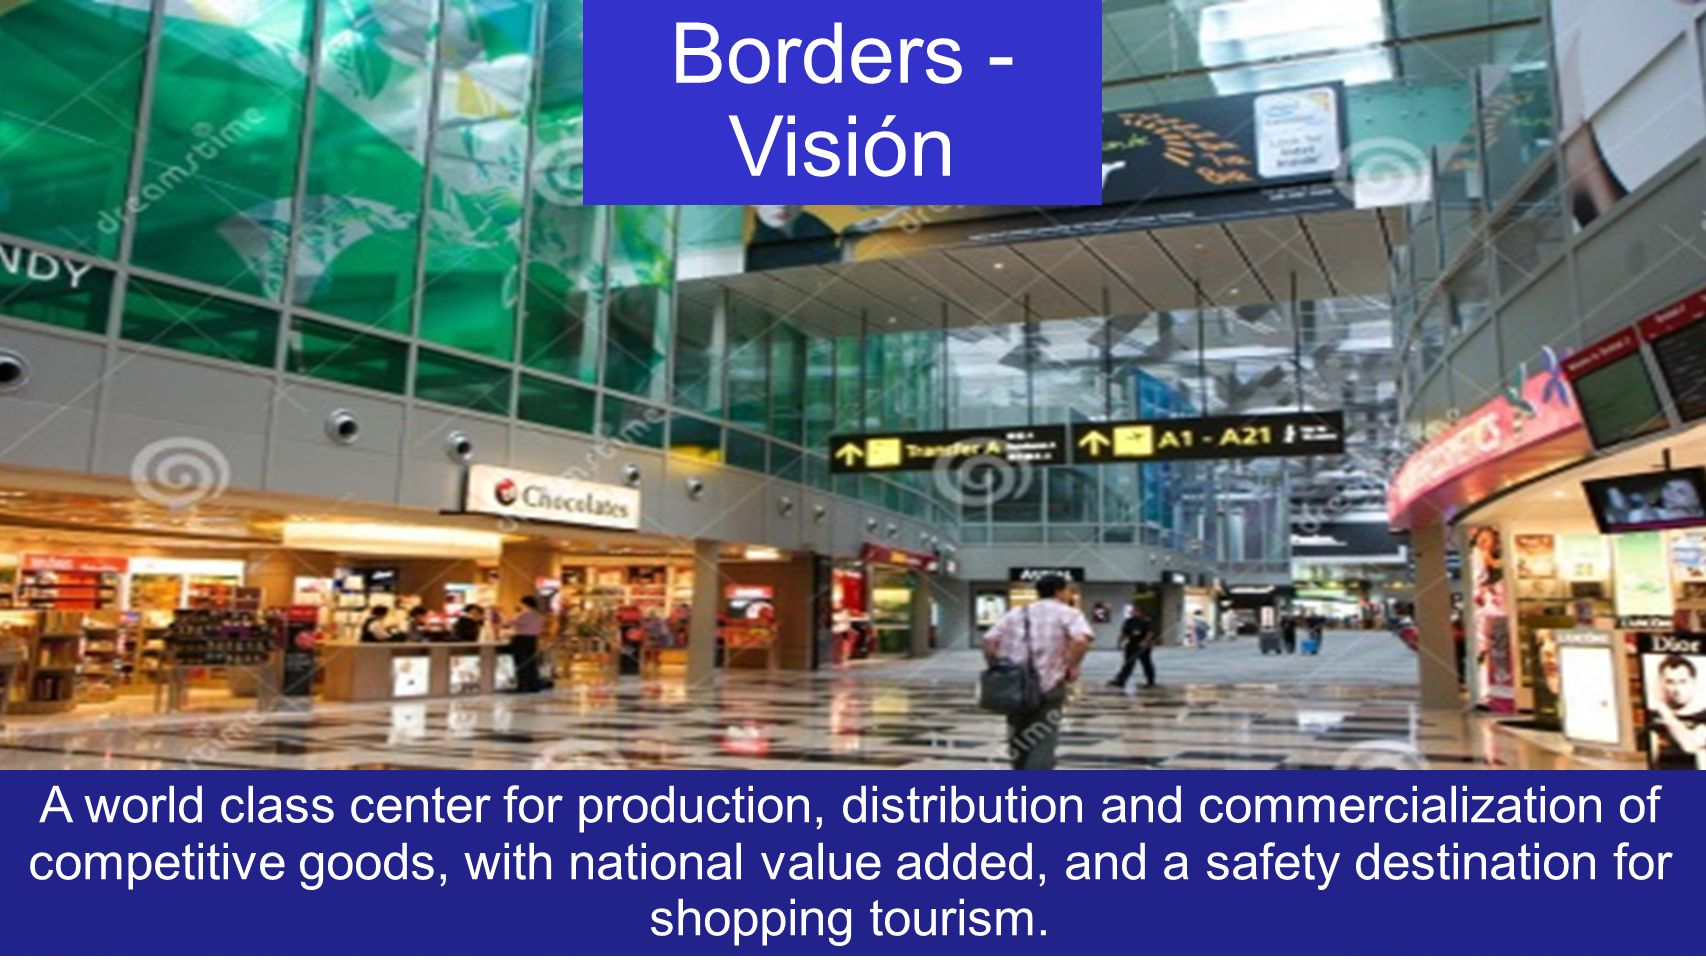 Borders - Visión A world class center for production, distribution and commercialization of competitive goods, with national value added, and a safety destination for shopping tourism.